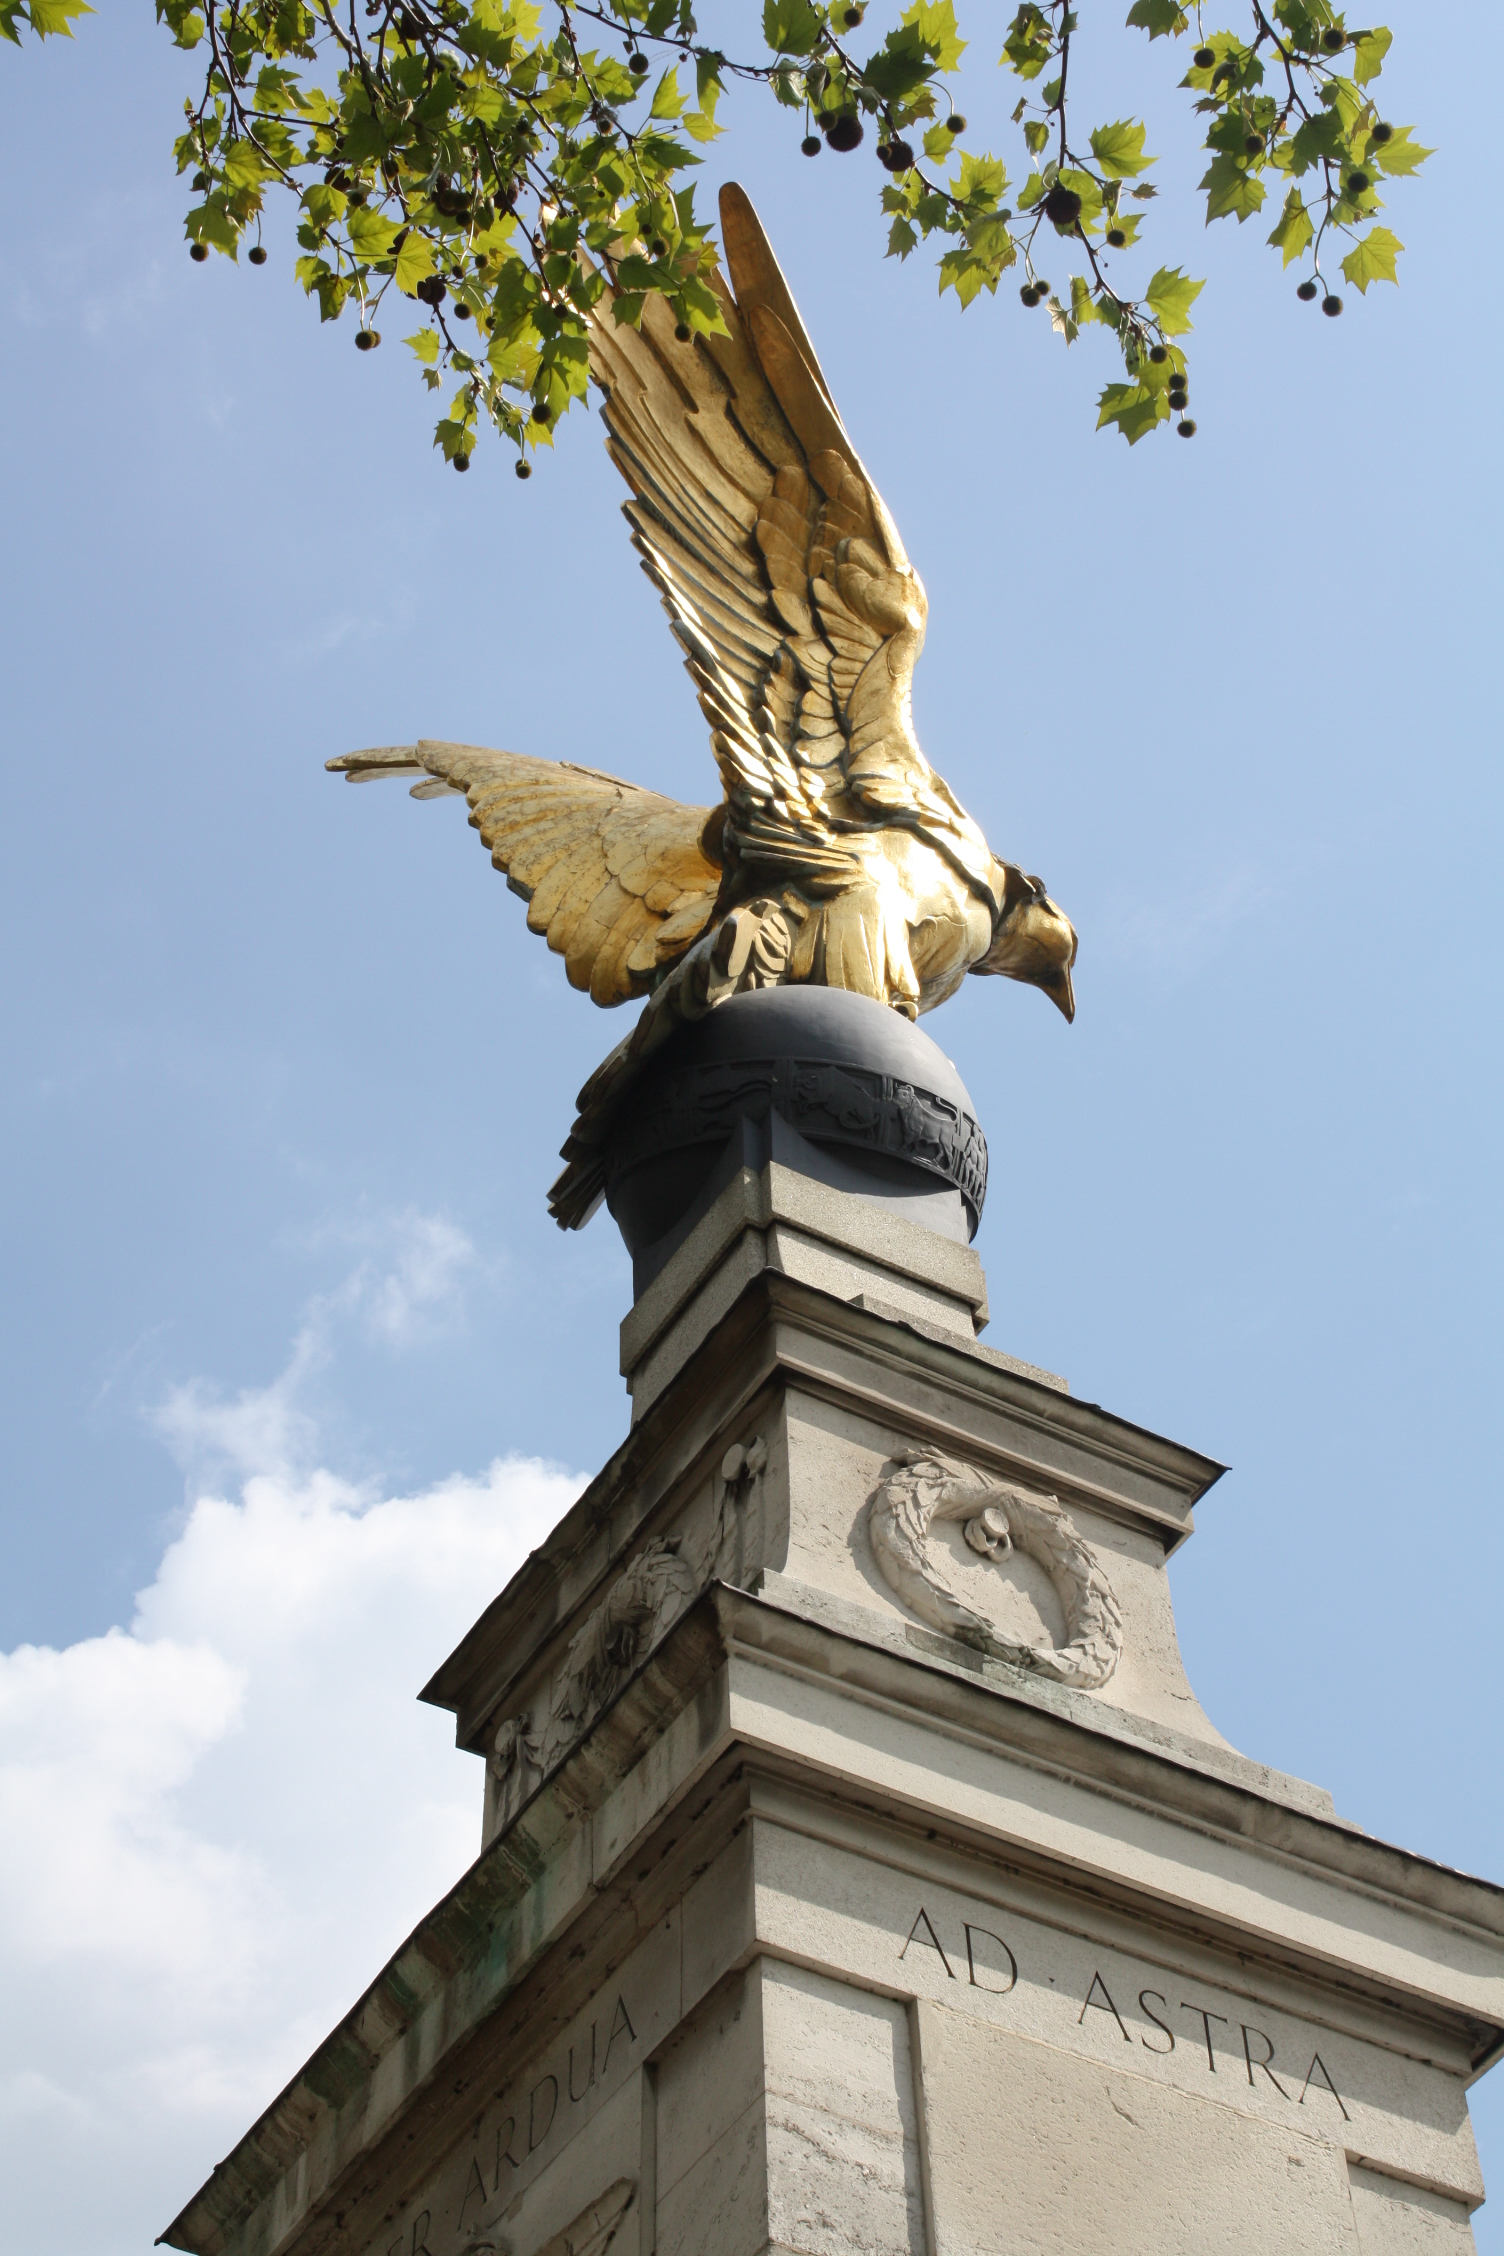 The Royal Air Force Memorial is situated on Victoria Embankment in central London and is dedicated originally to the memory of the casualties of the Royal Air Force in World War I. It has been extended for other conflicts too. It can be found between Cleopatra's Needle and Westminster Bridge, and di...